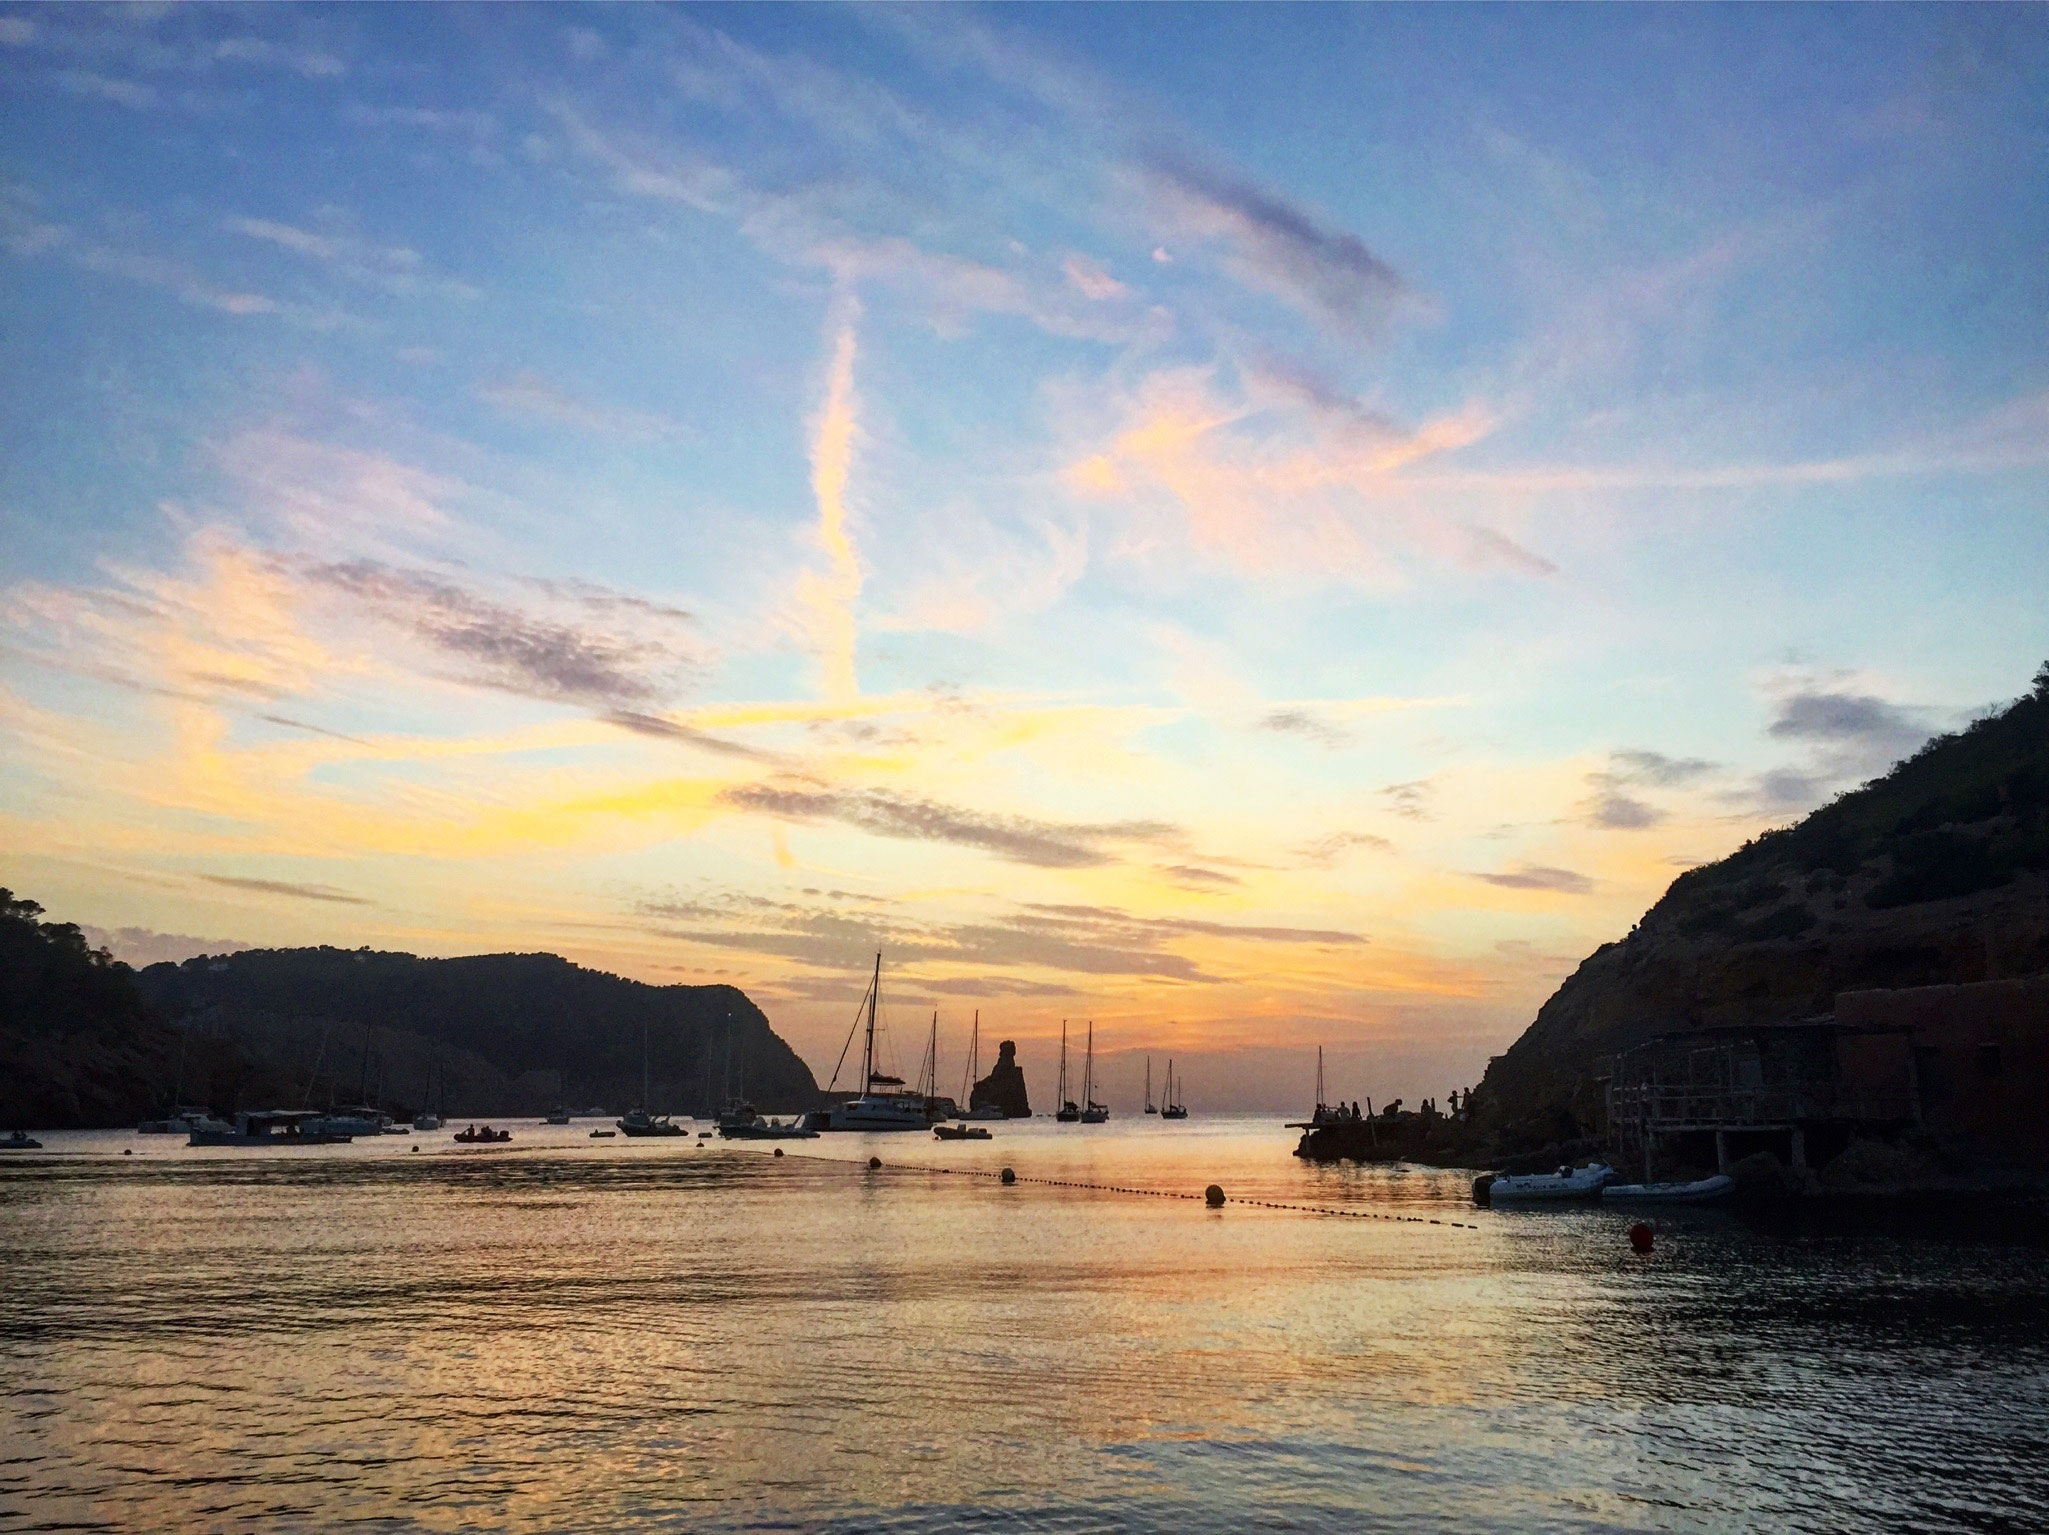 A colourful sunset over the yachts on the ocean and surrounding mountains